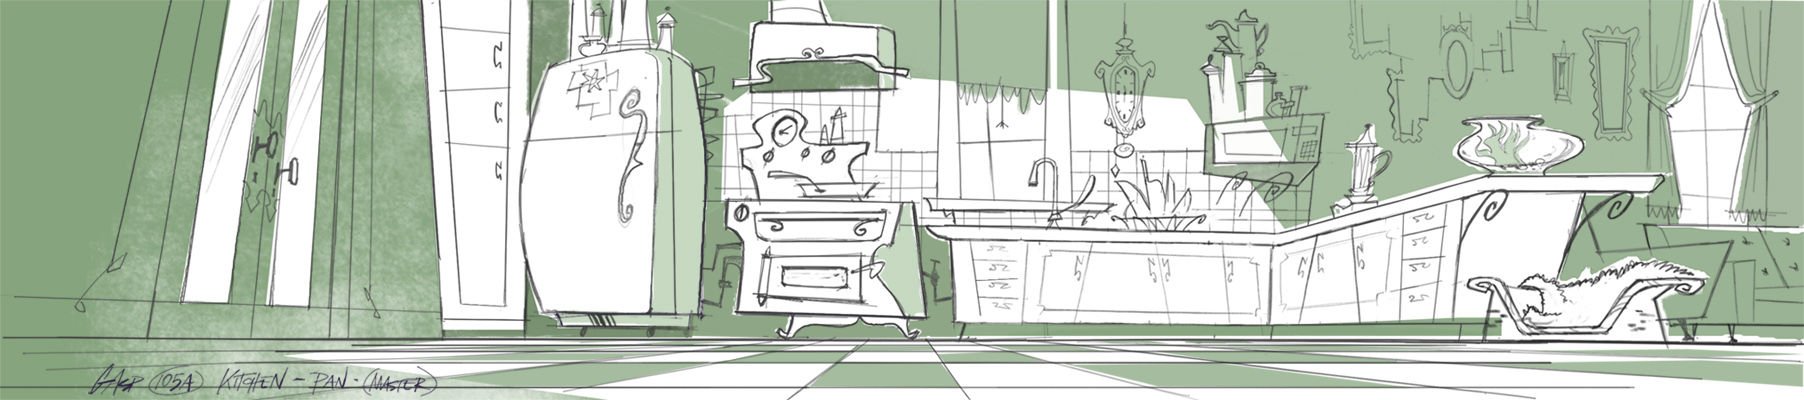 Gasp_105a_kitchen_master_v01